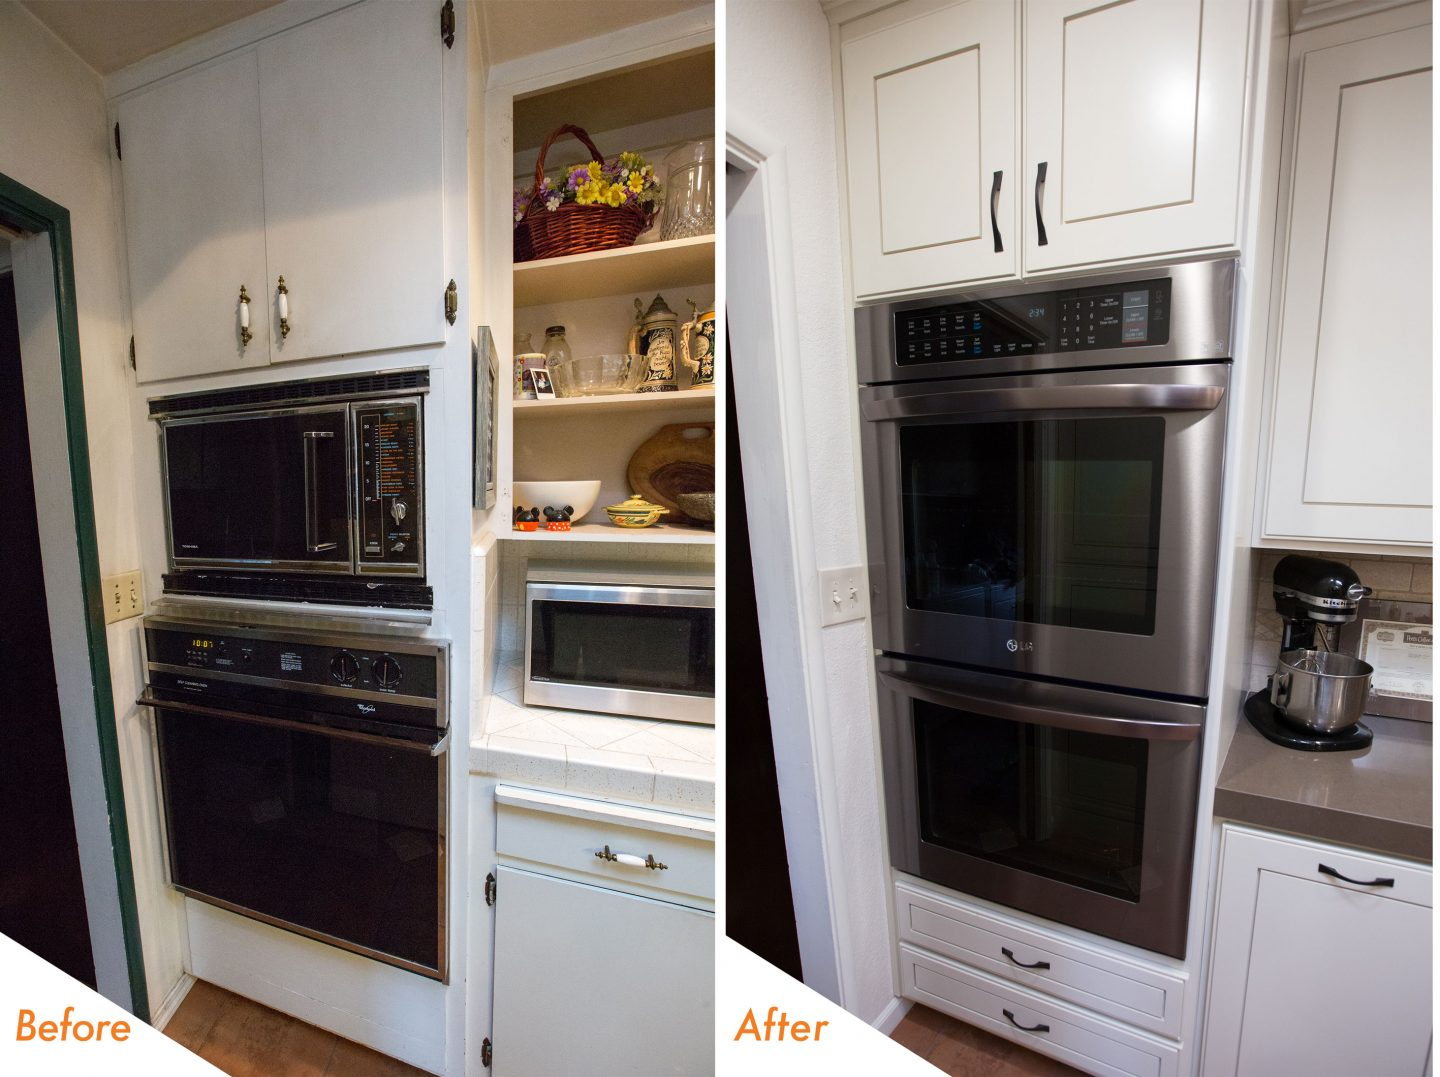 custom cabinets and new appliances.